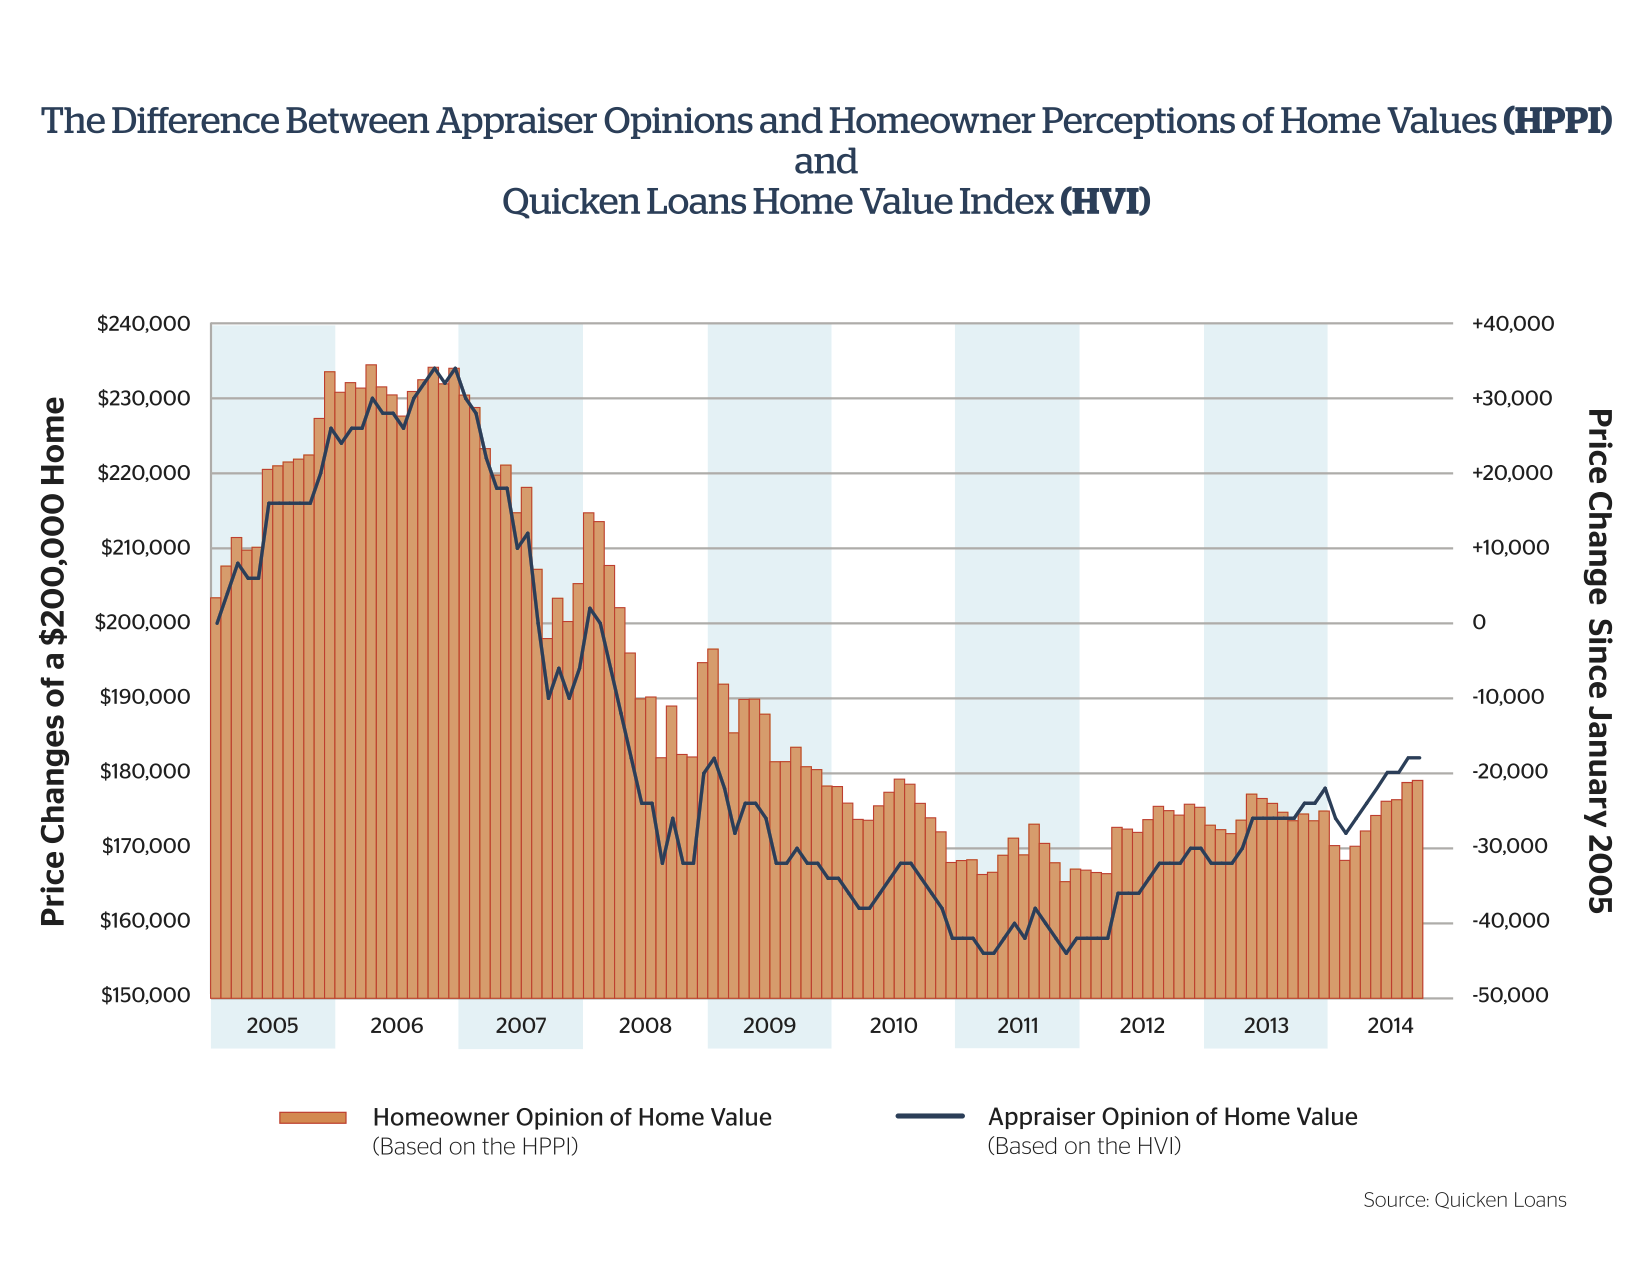 perception vs reality quicken loans announces two revolutionary perception is not always reality when it comes to home prices walters said the quicken loans home price perception index very clearly shows that